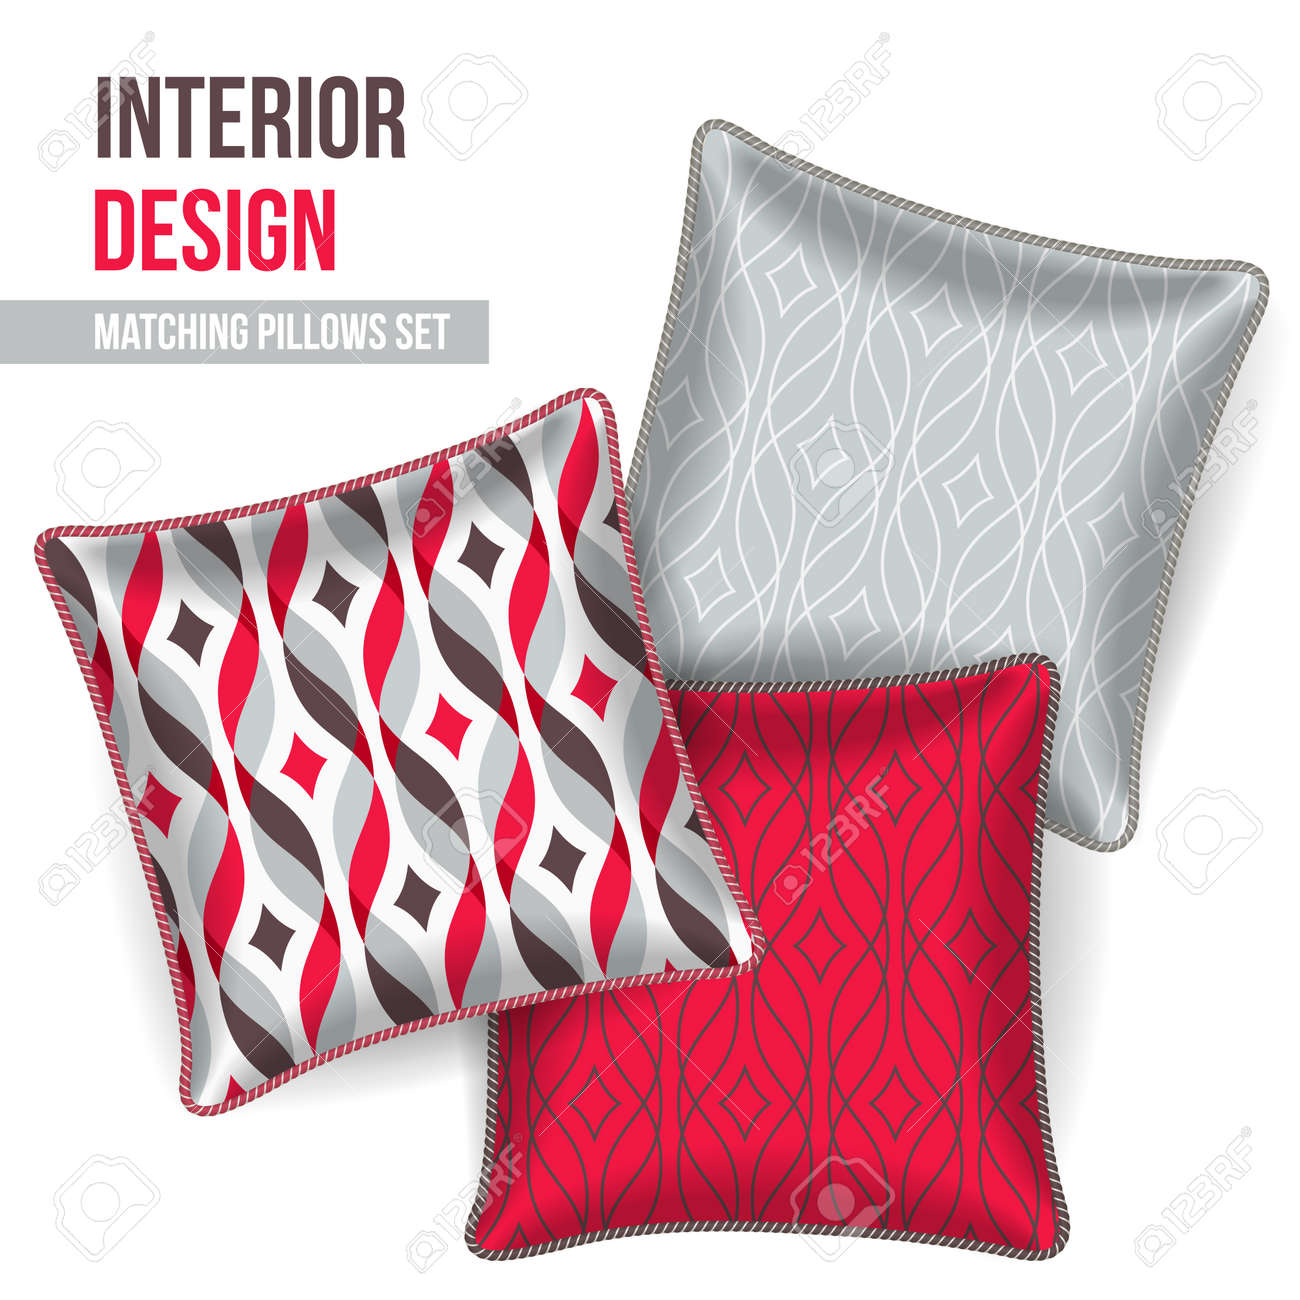 Decorative Pillow Set Set Of 3 Matching Decorative Pillows For Interior Design Red